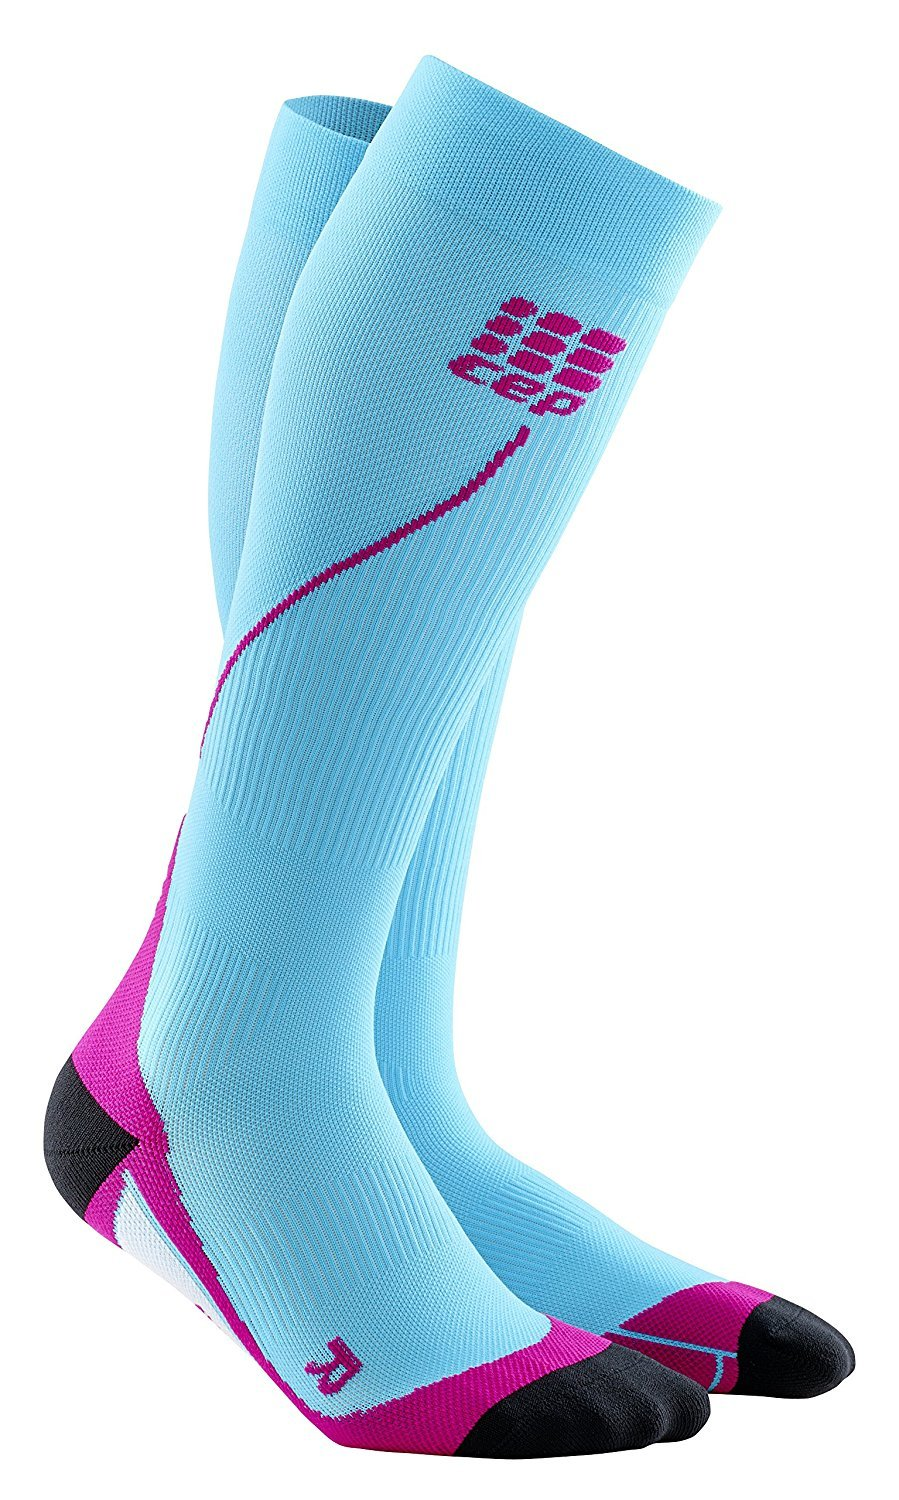 Womens Running Compression Socks - CEP Long 2.0 (Hawaii Blue/Pink) III by CEP (Image #1)